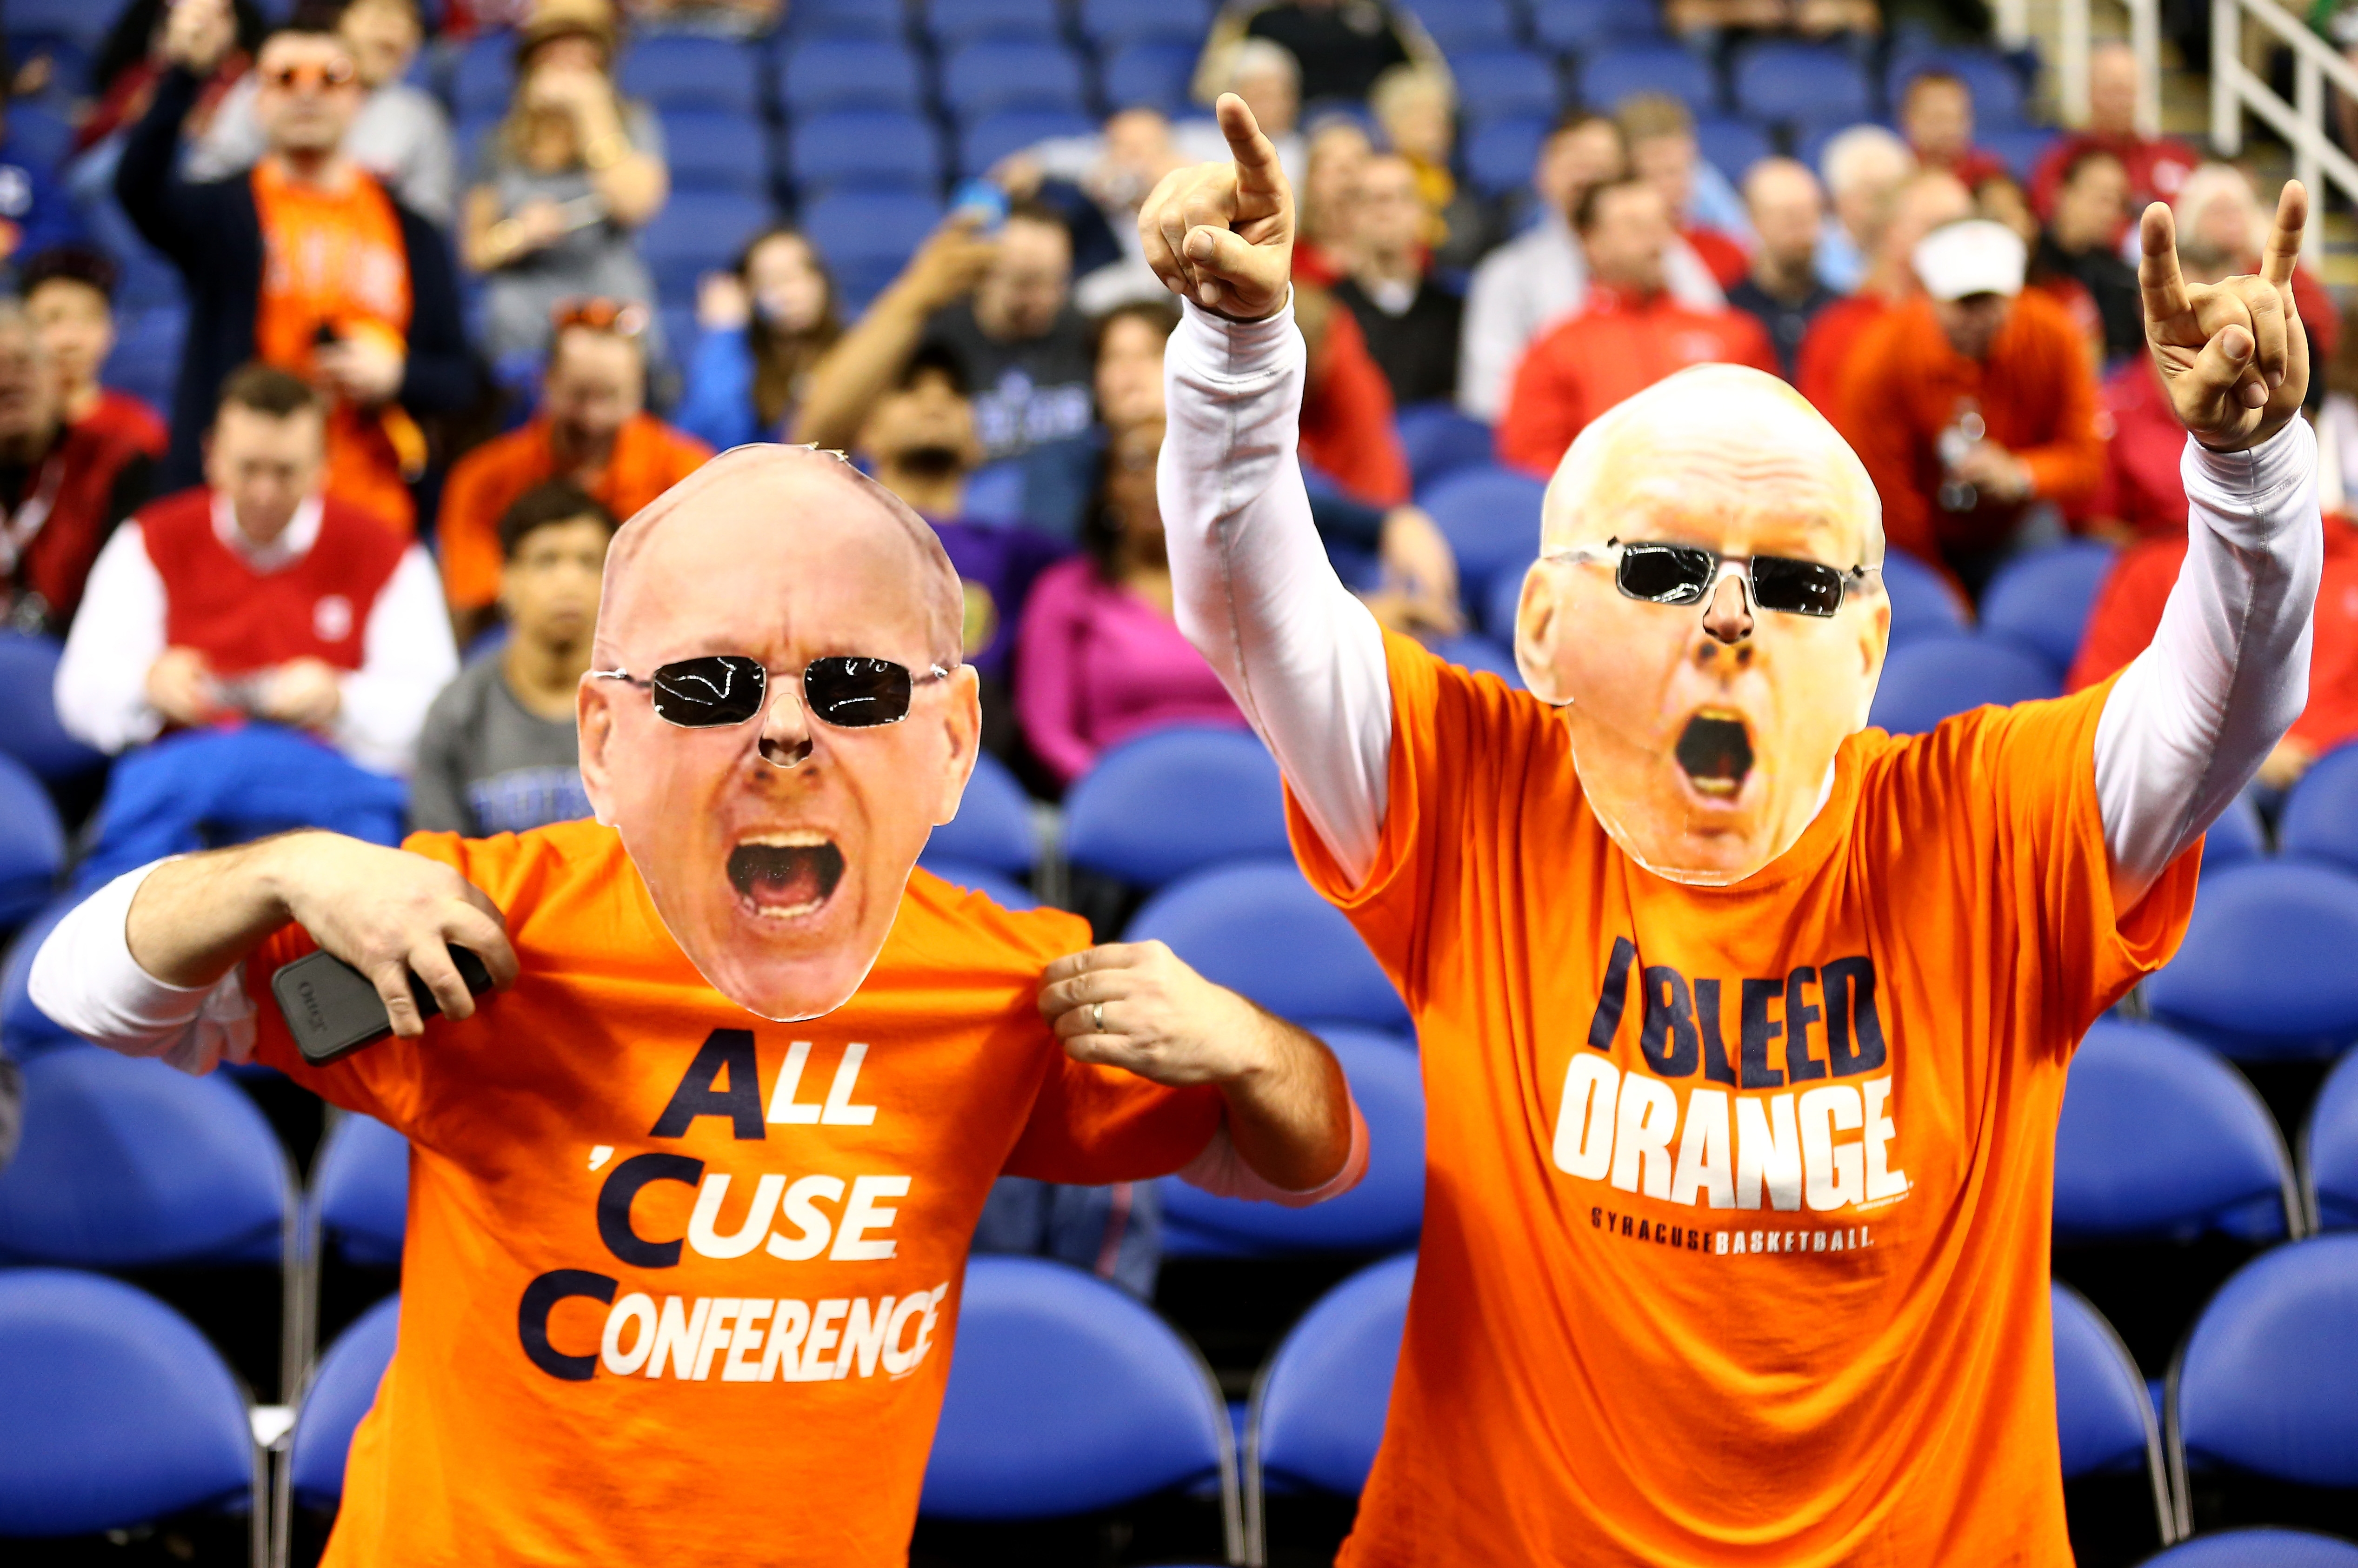 Fans of the Syracuse Orange cheer on their team before the March 14 game against North Carolina State in the quarterfinals of the 2014 Men's ACC Basketball Tournament.